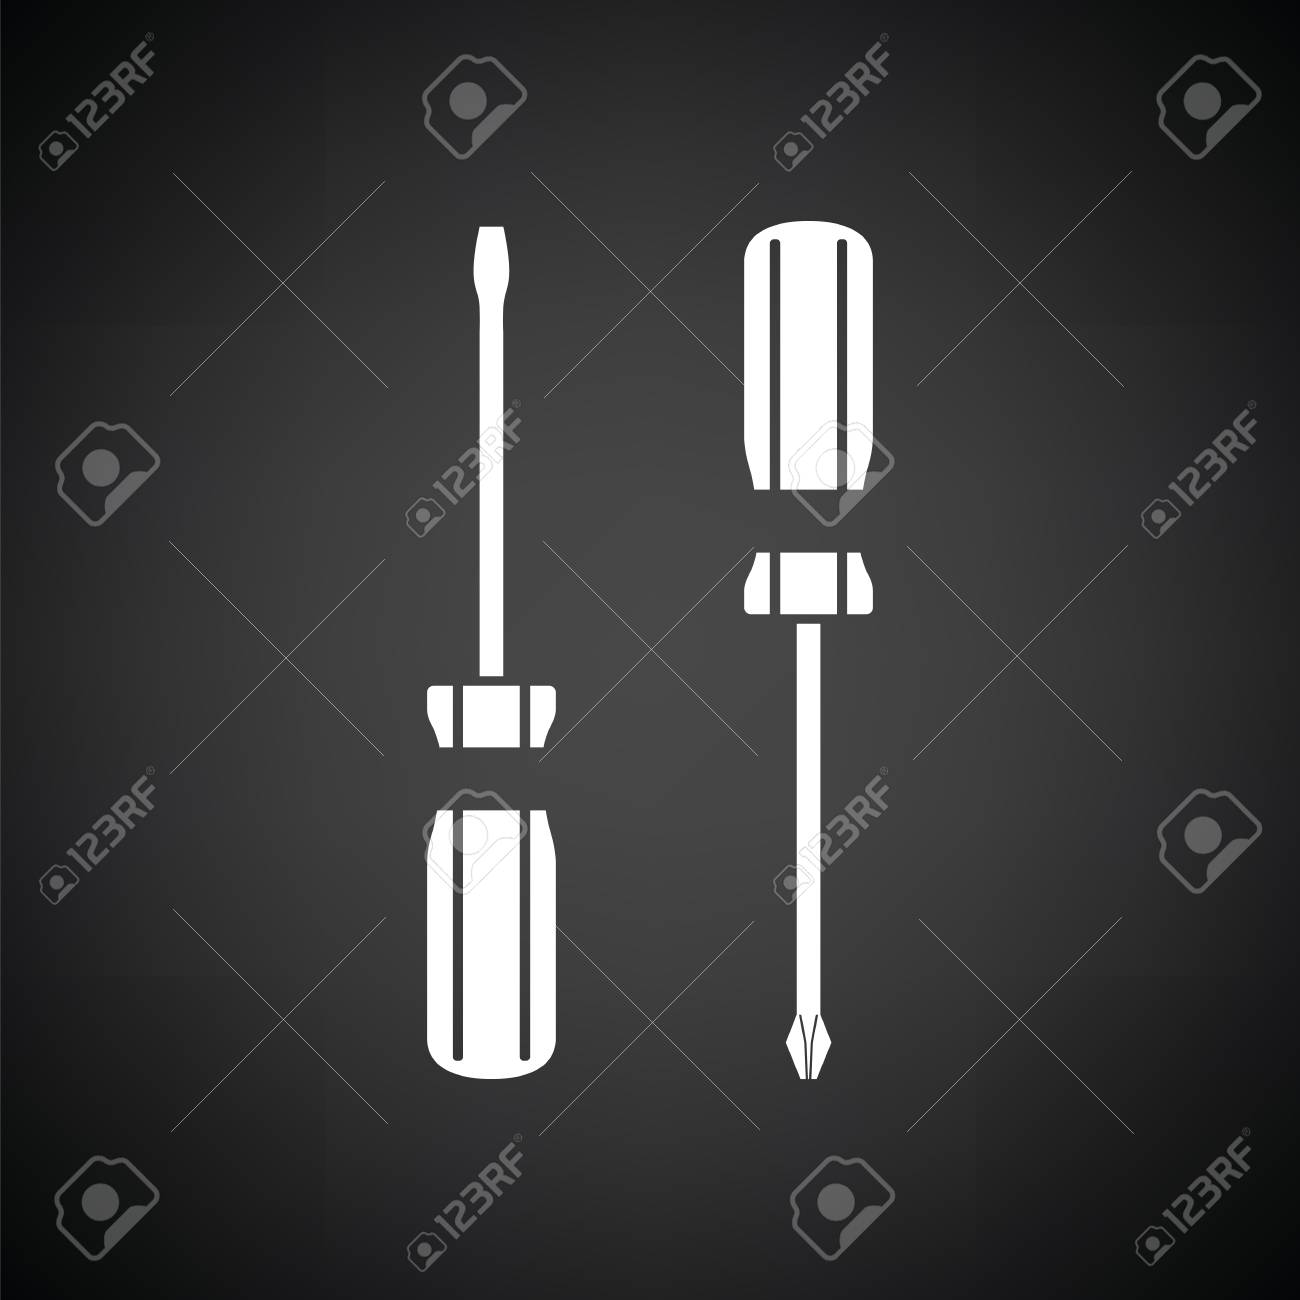 Screwdriver icon. Black background with white. Vector illustration. - 107591318